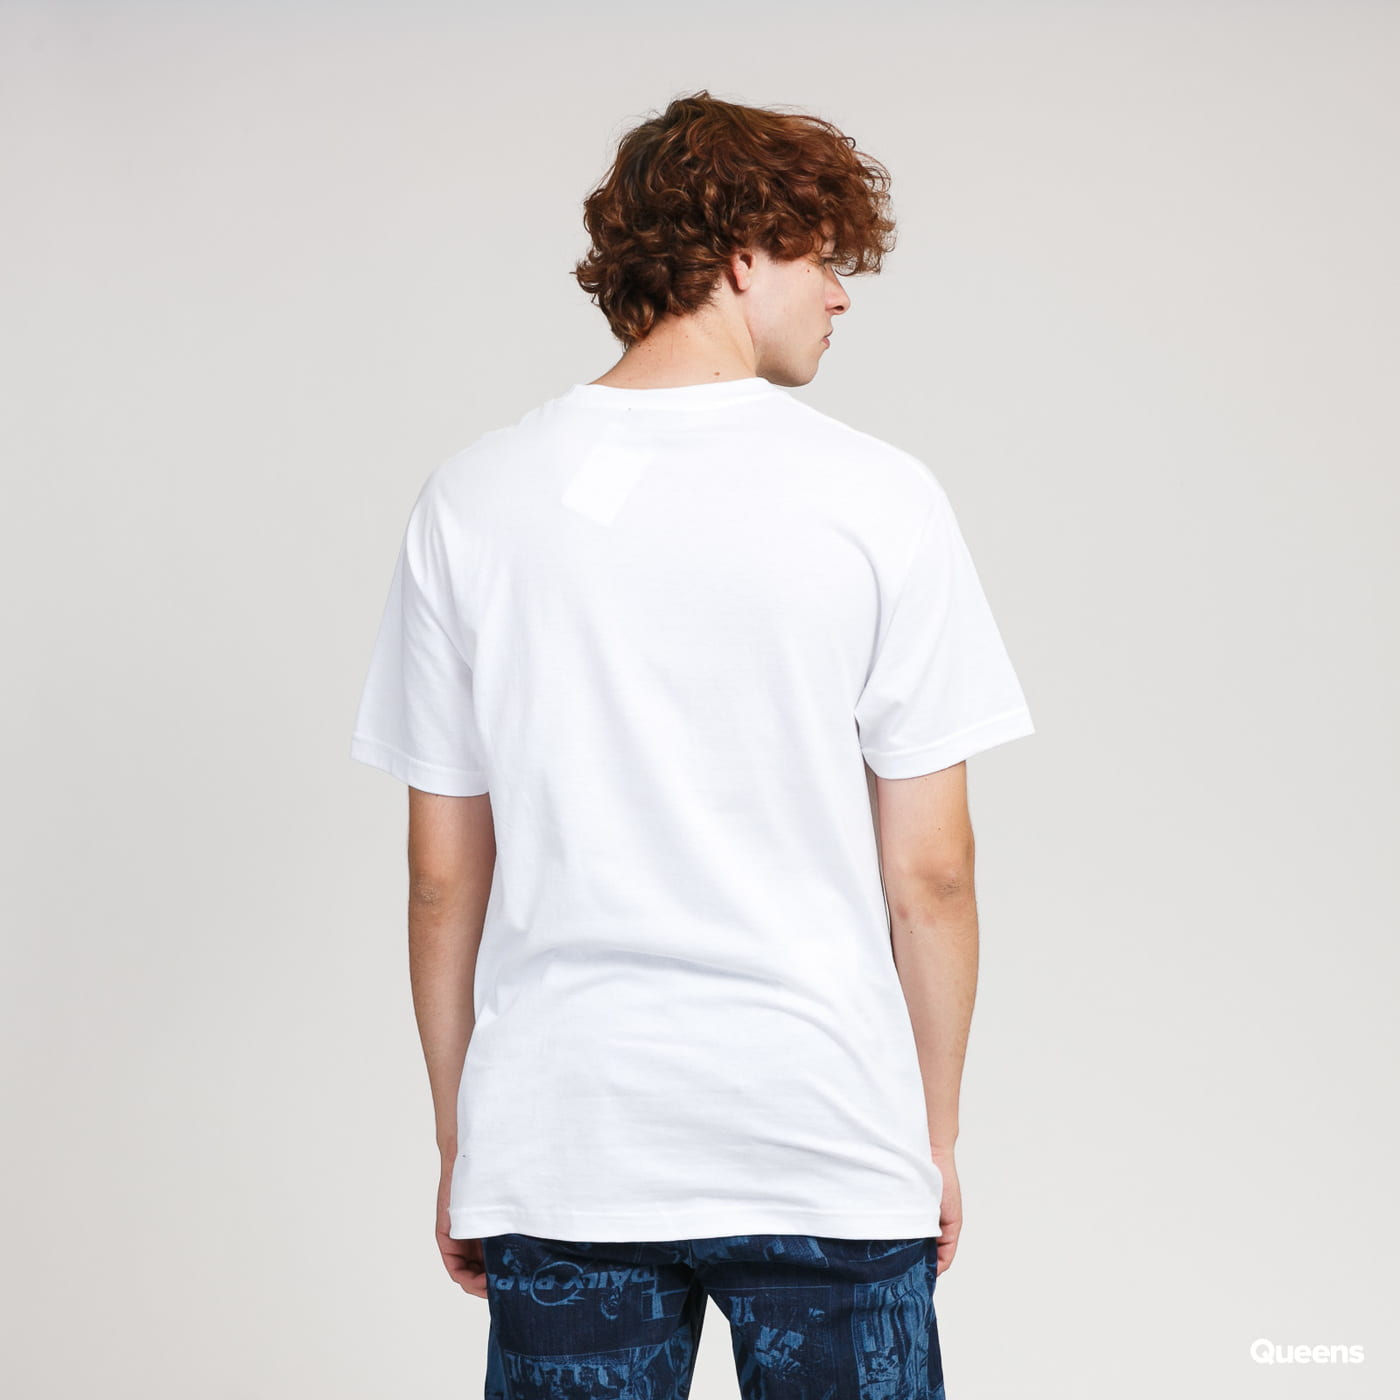 The Hundreds Personality T-Shirt blue / turquoise